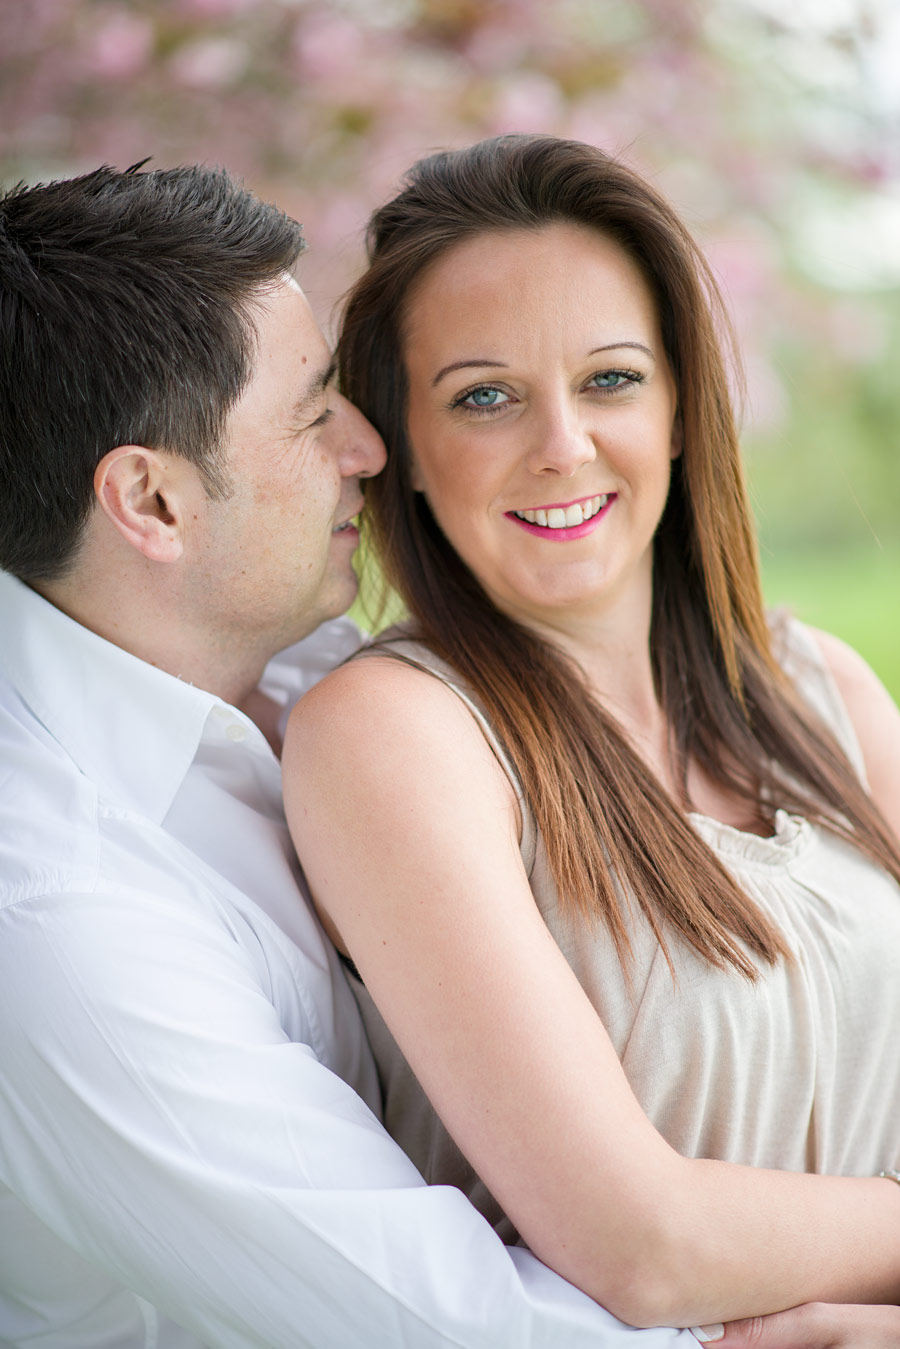 Couple Portrait Photography